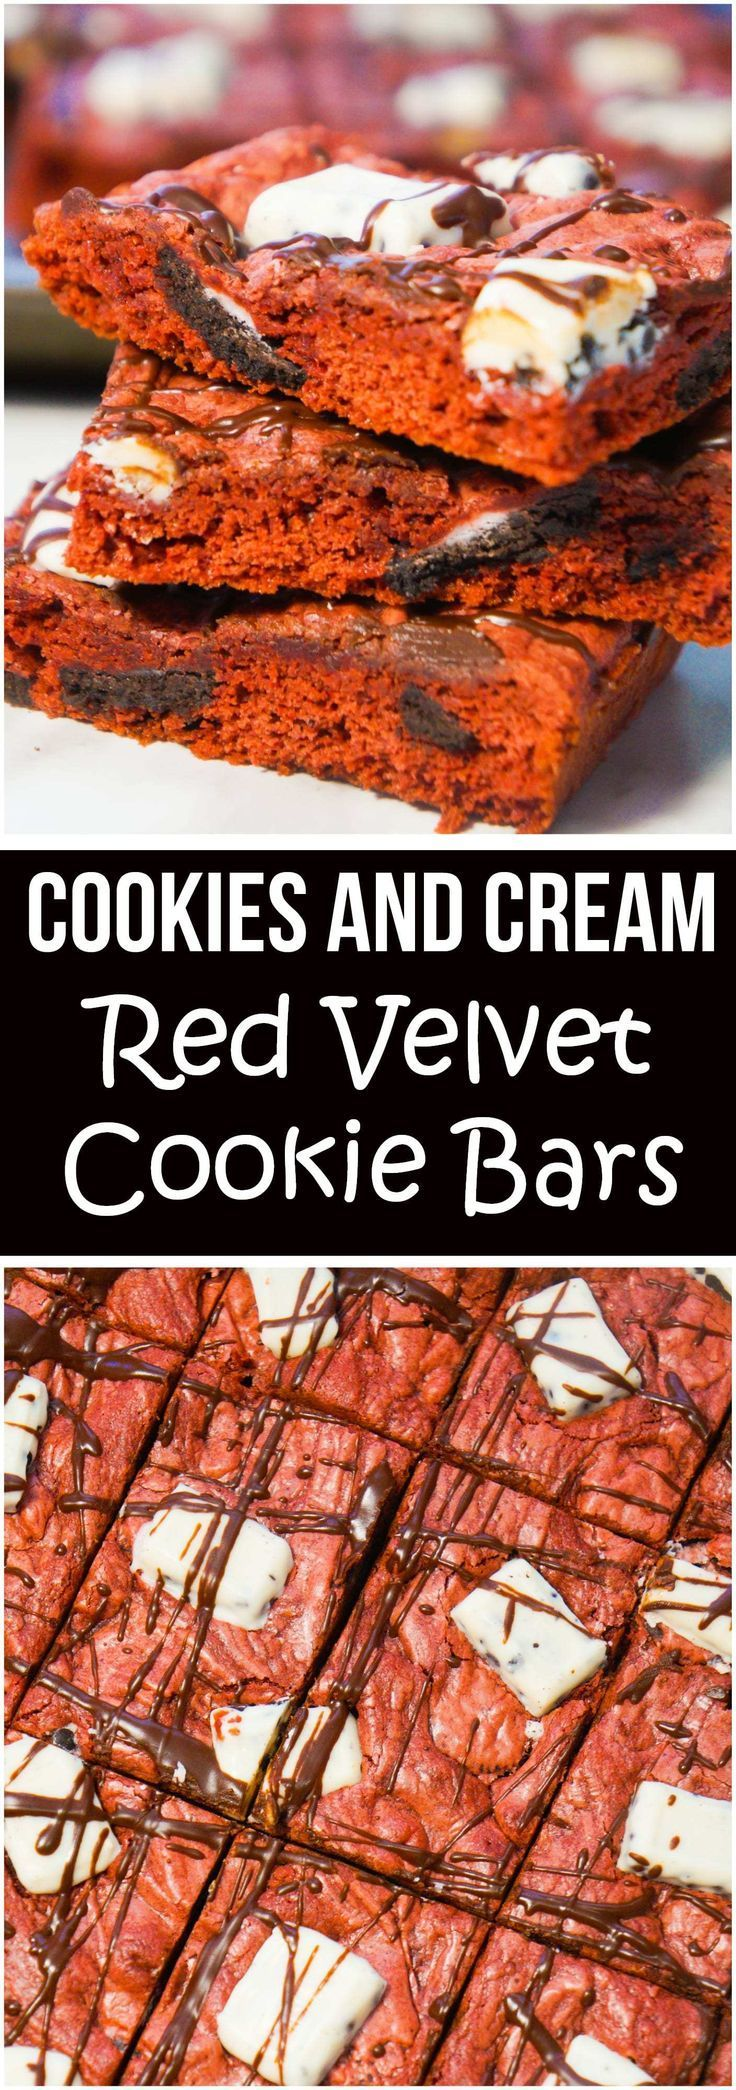 Cookies and Cream Red Velvet Cookie Bars are an easy